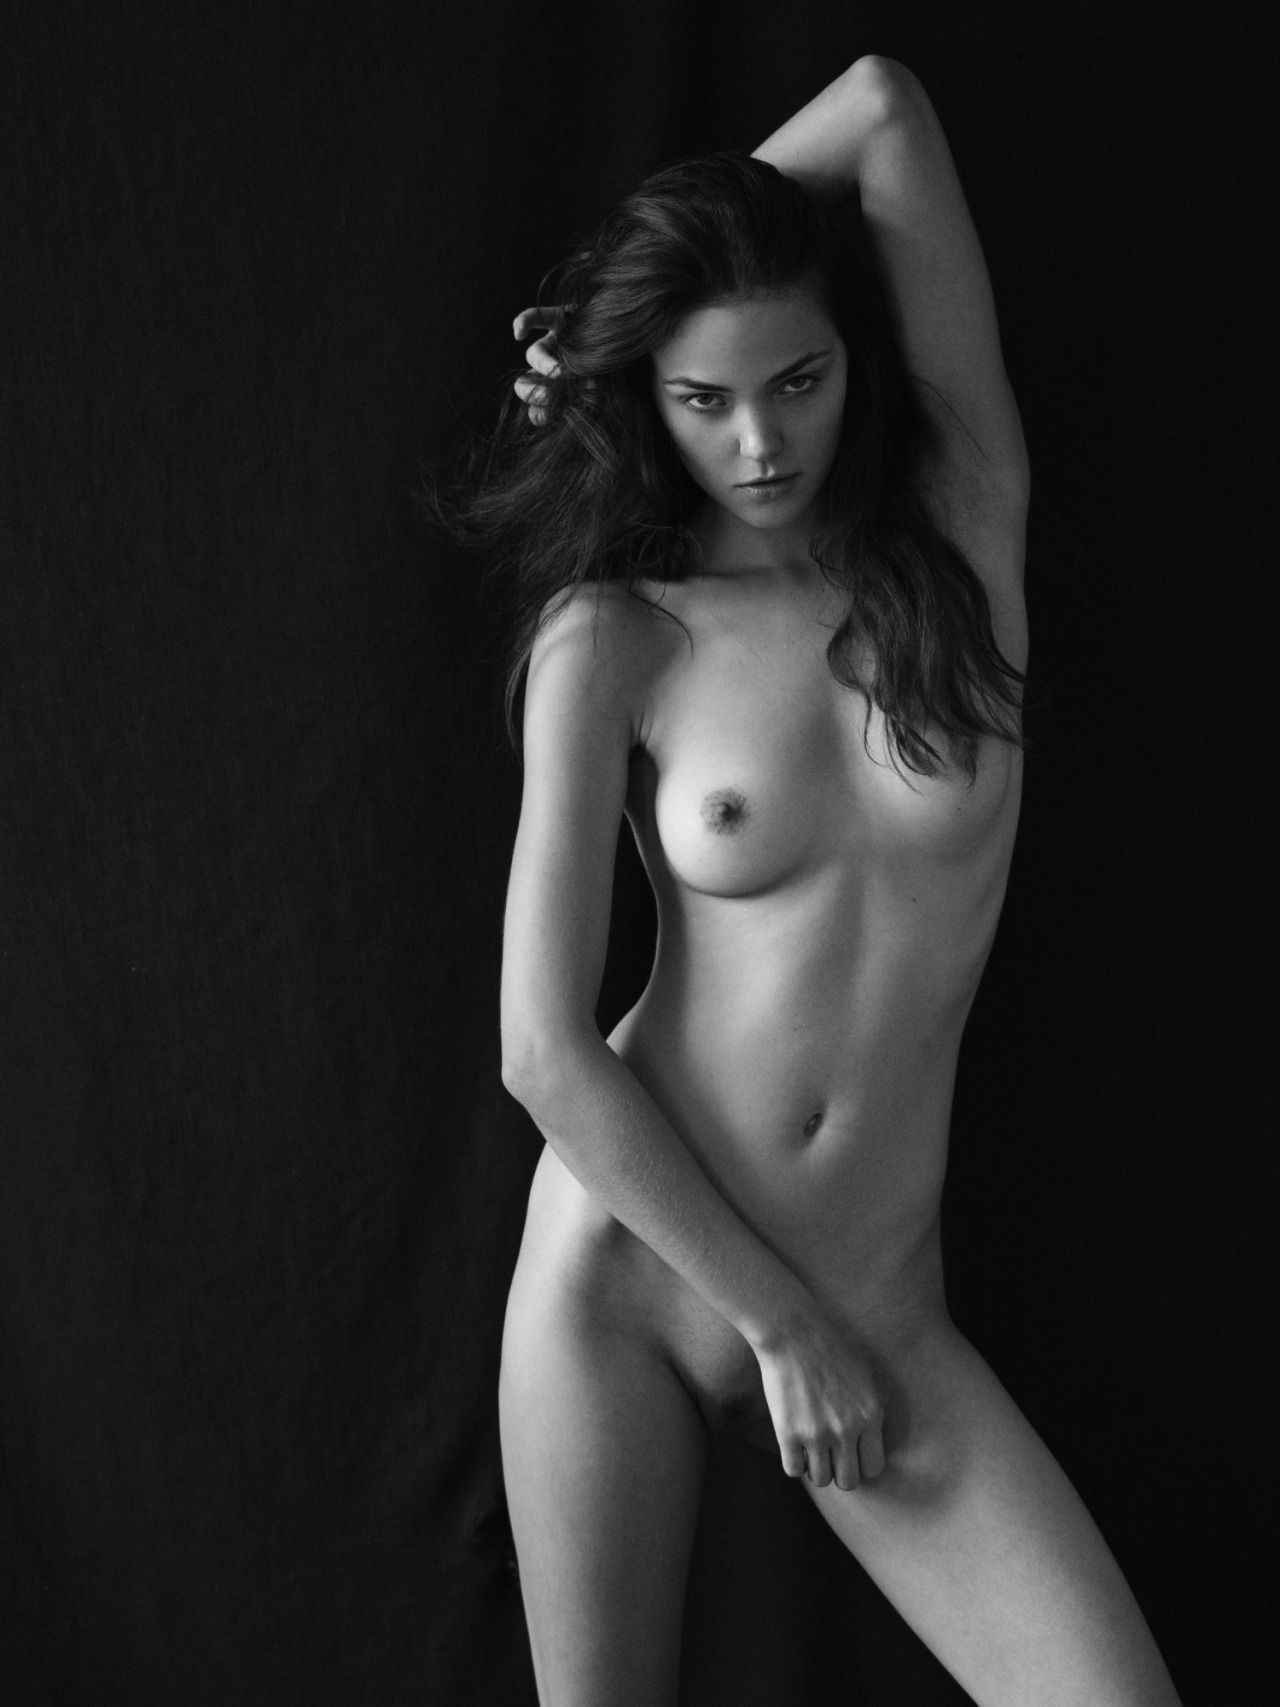 Eastern europe babes nude